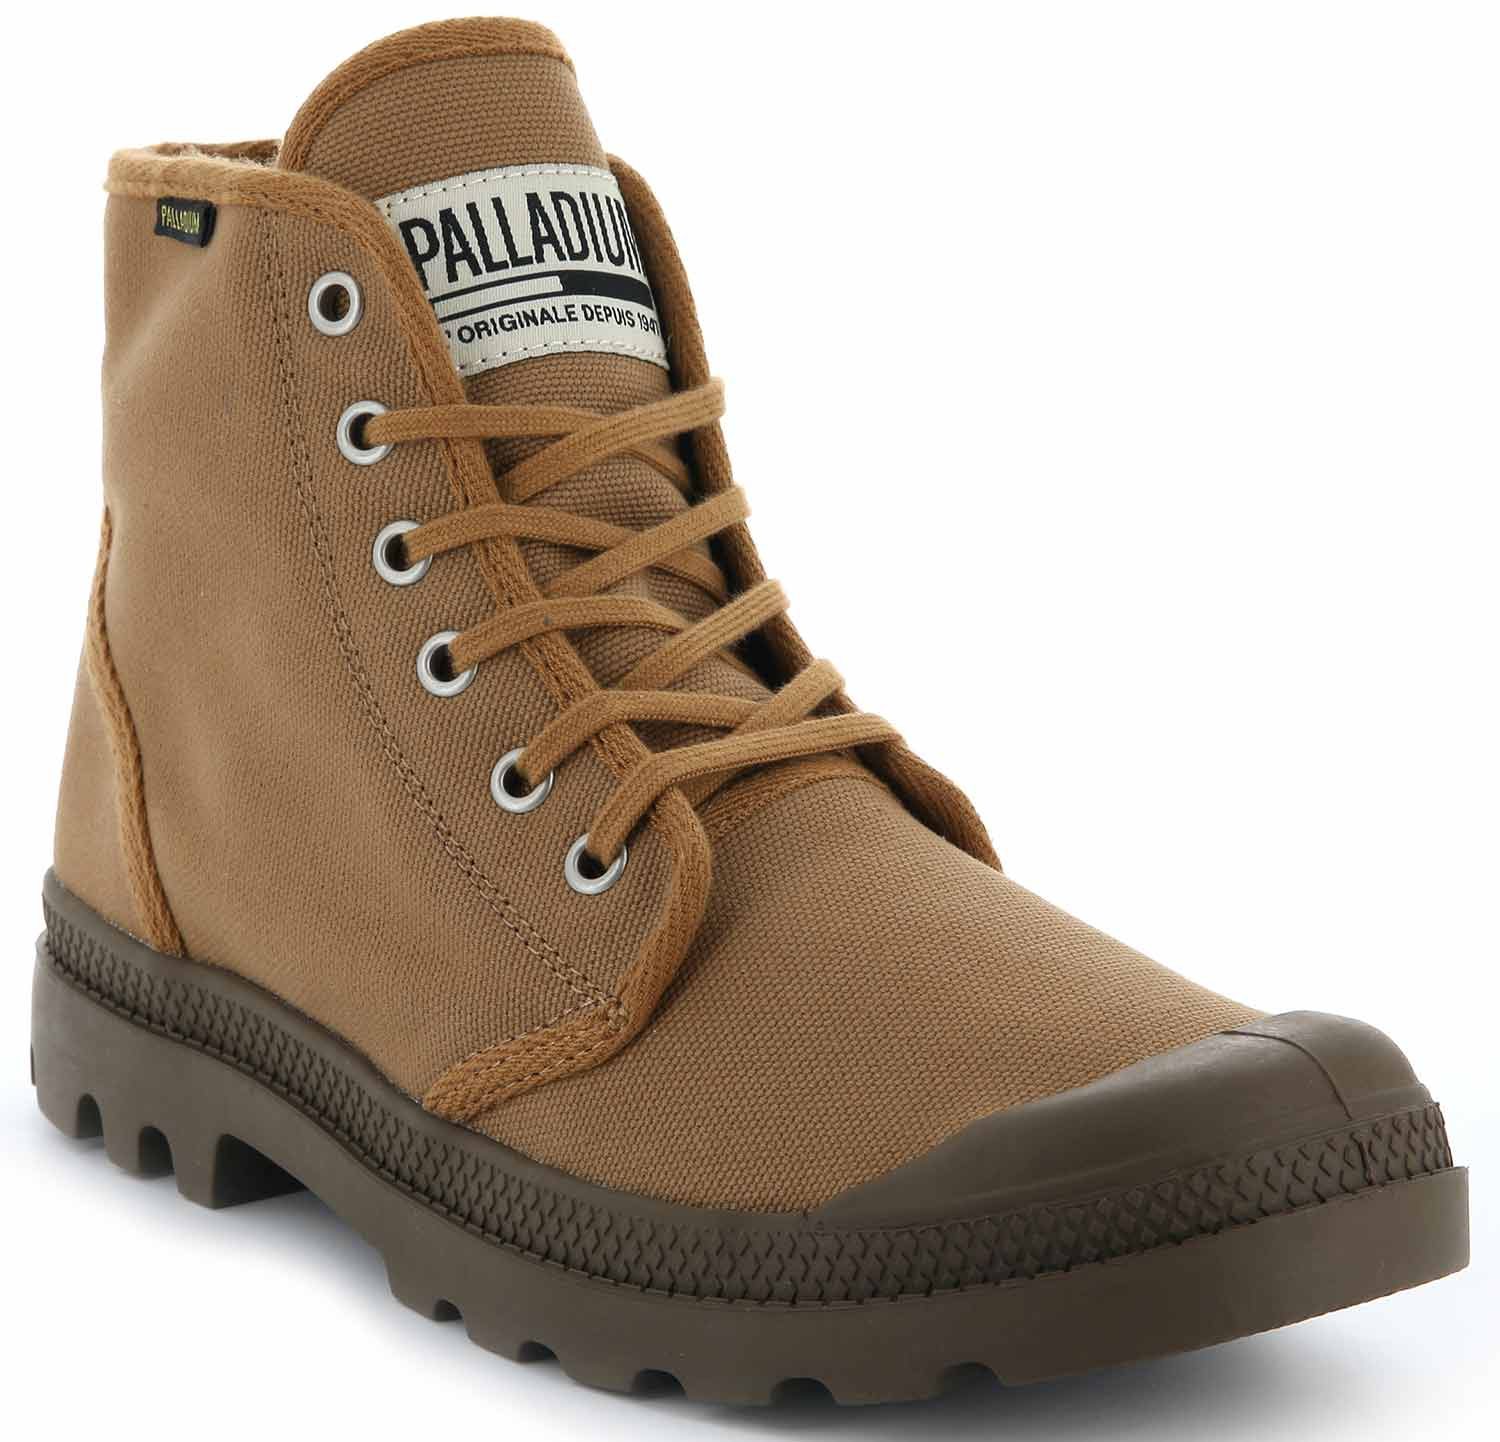 Palladium Pampa Hi ORIGINALE bottes chaussures haut top Baskets unisexes Baggy